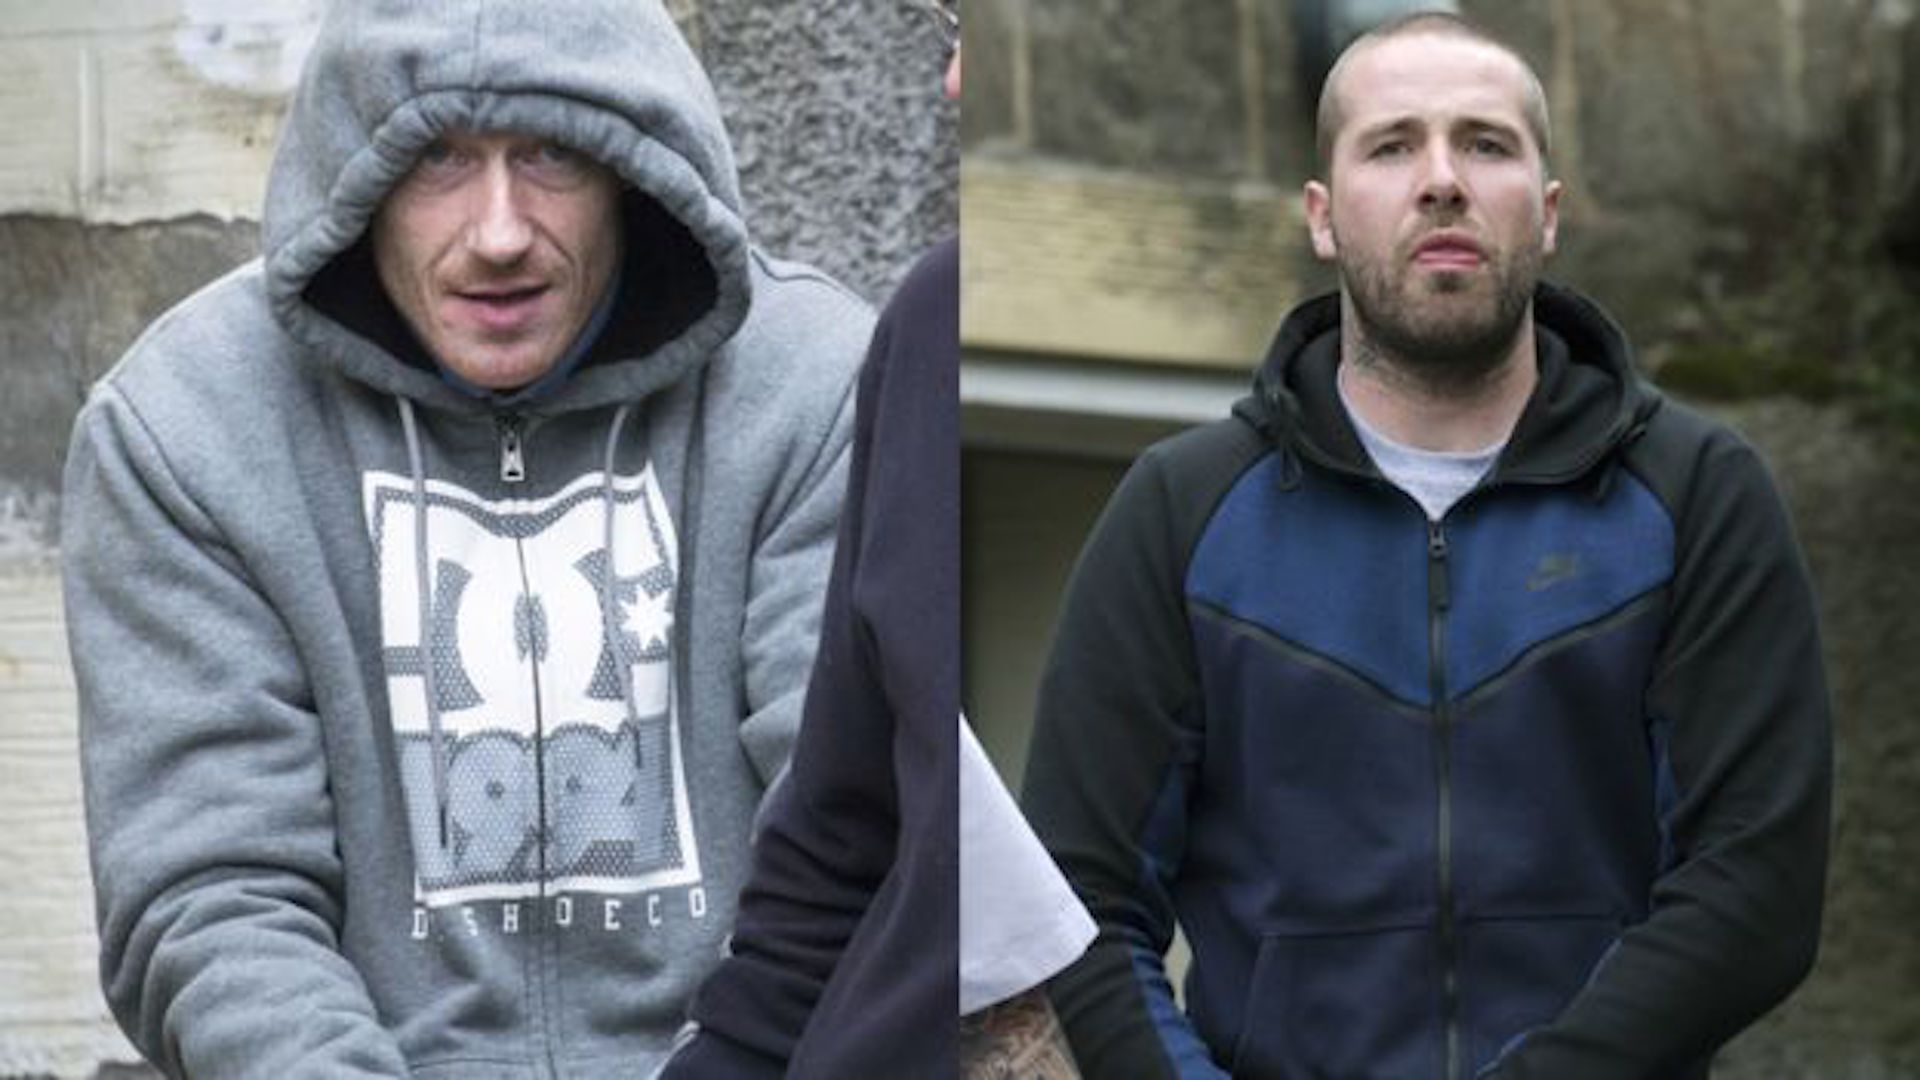 Two men convicted of £500k Gleneagles 'terrorist' robbery